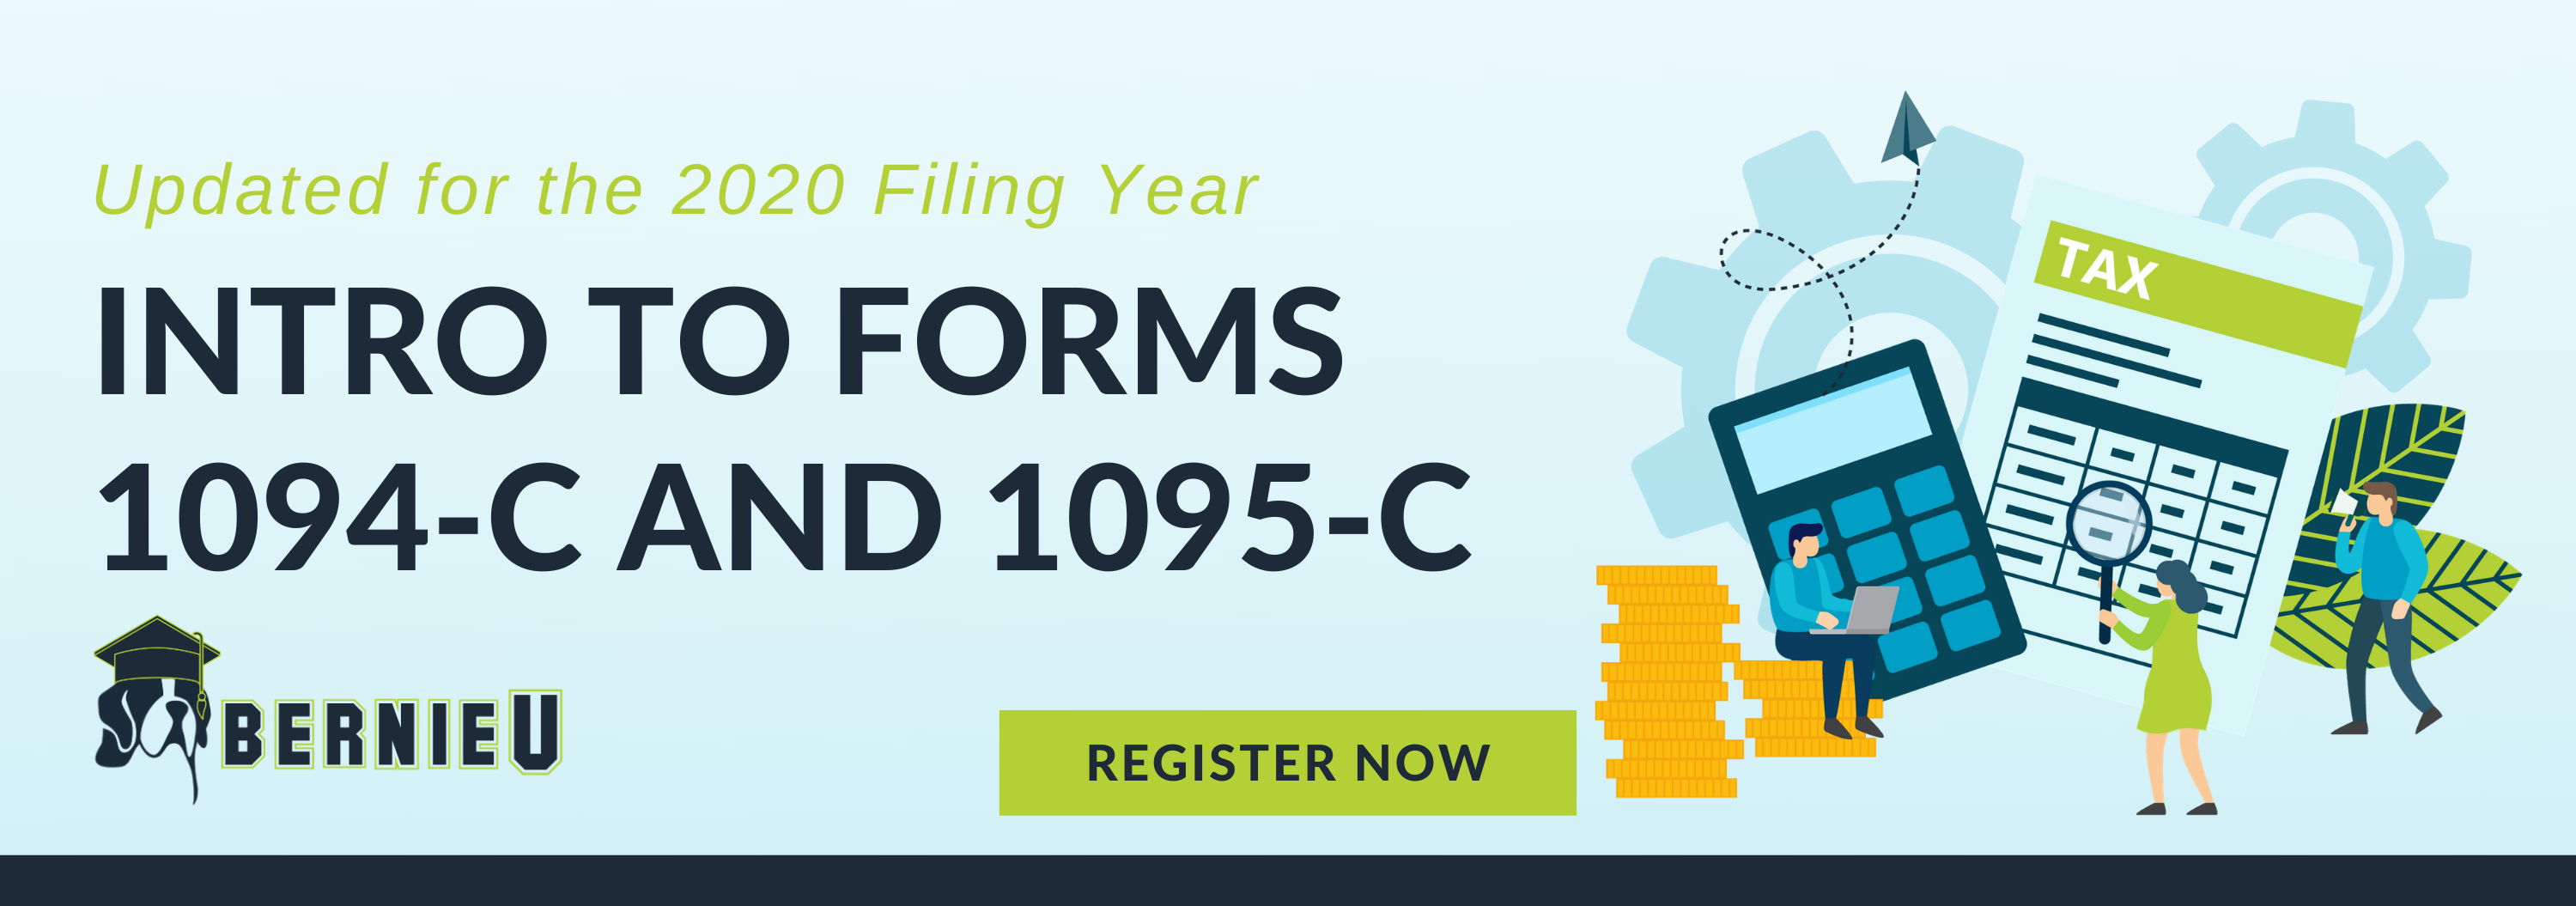 Intro to Forms 1094-C and 1095-C BernieU Course blog Call to Action